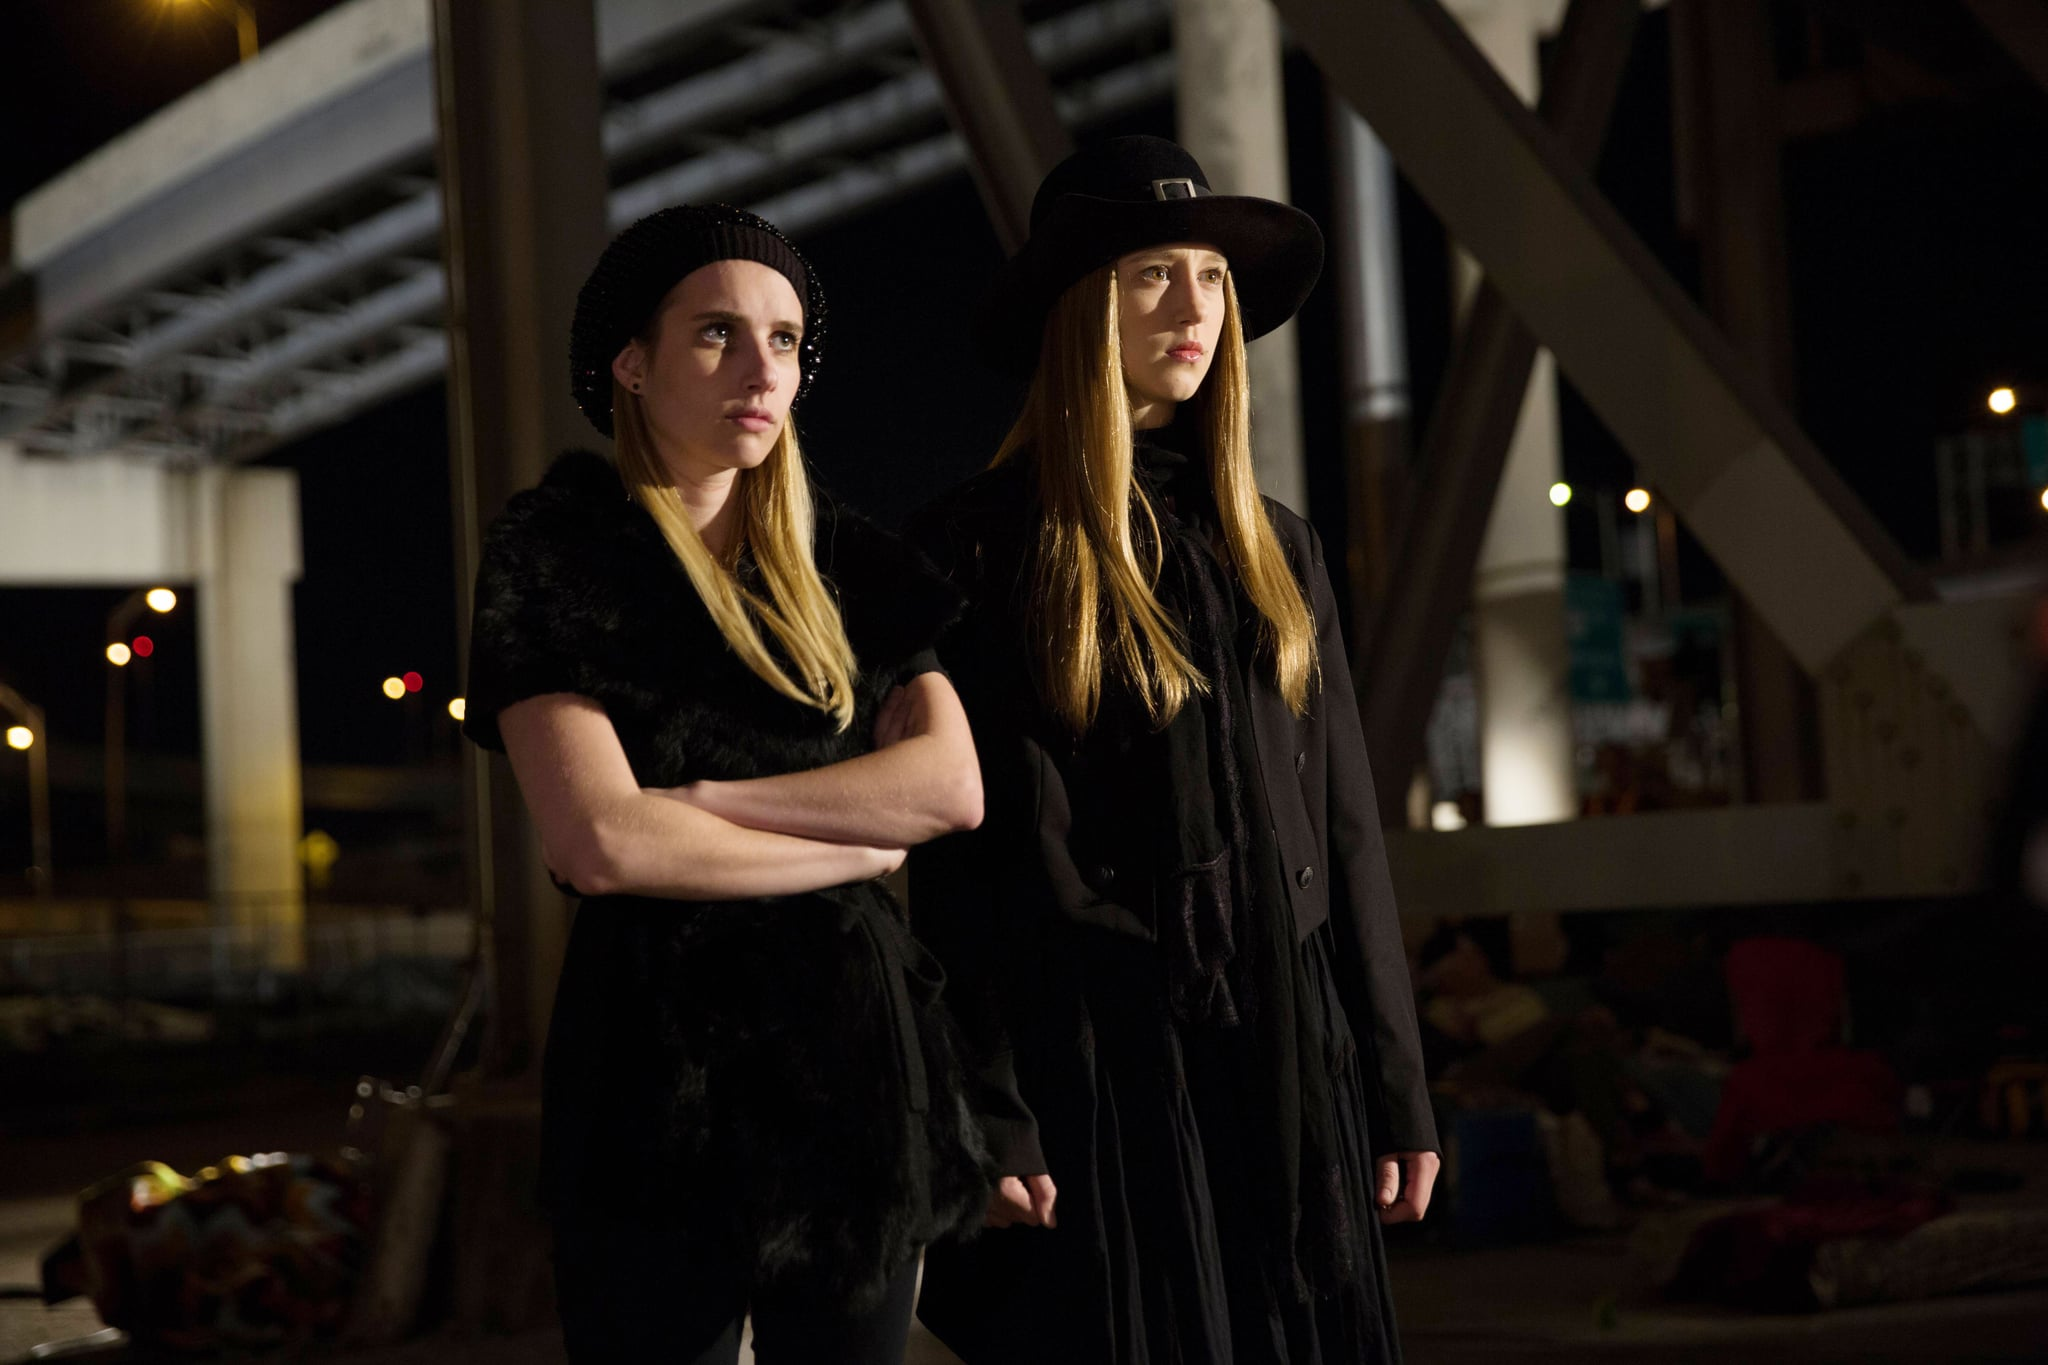 AMERICAN HORROR STORY: COVEN, l-r: Emma Roberts, Taissa Farmiga in 'The Sacred Taking' (Season 3, Episode 8, aired December 4, 2013). ph: Michele K. Short/FX Networks/courtesy Everett Collection